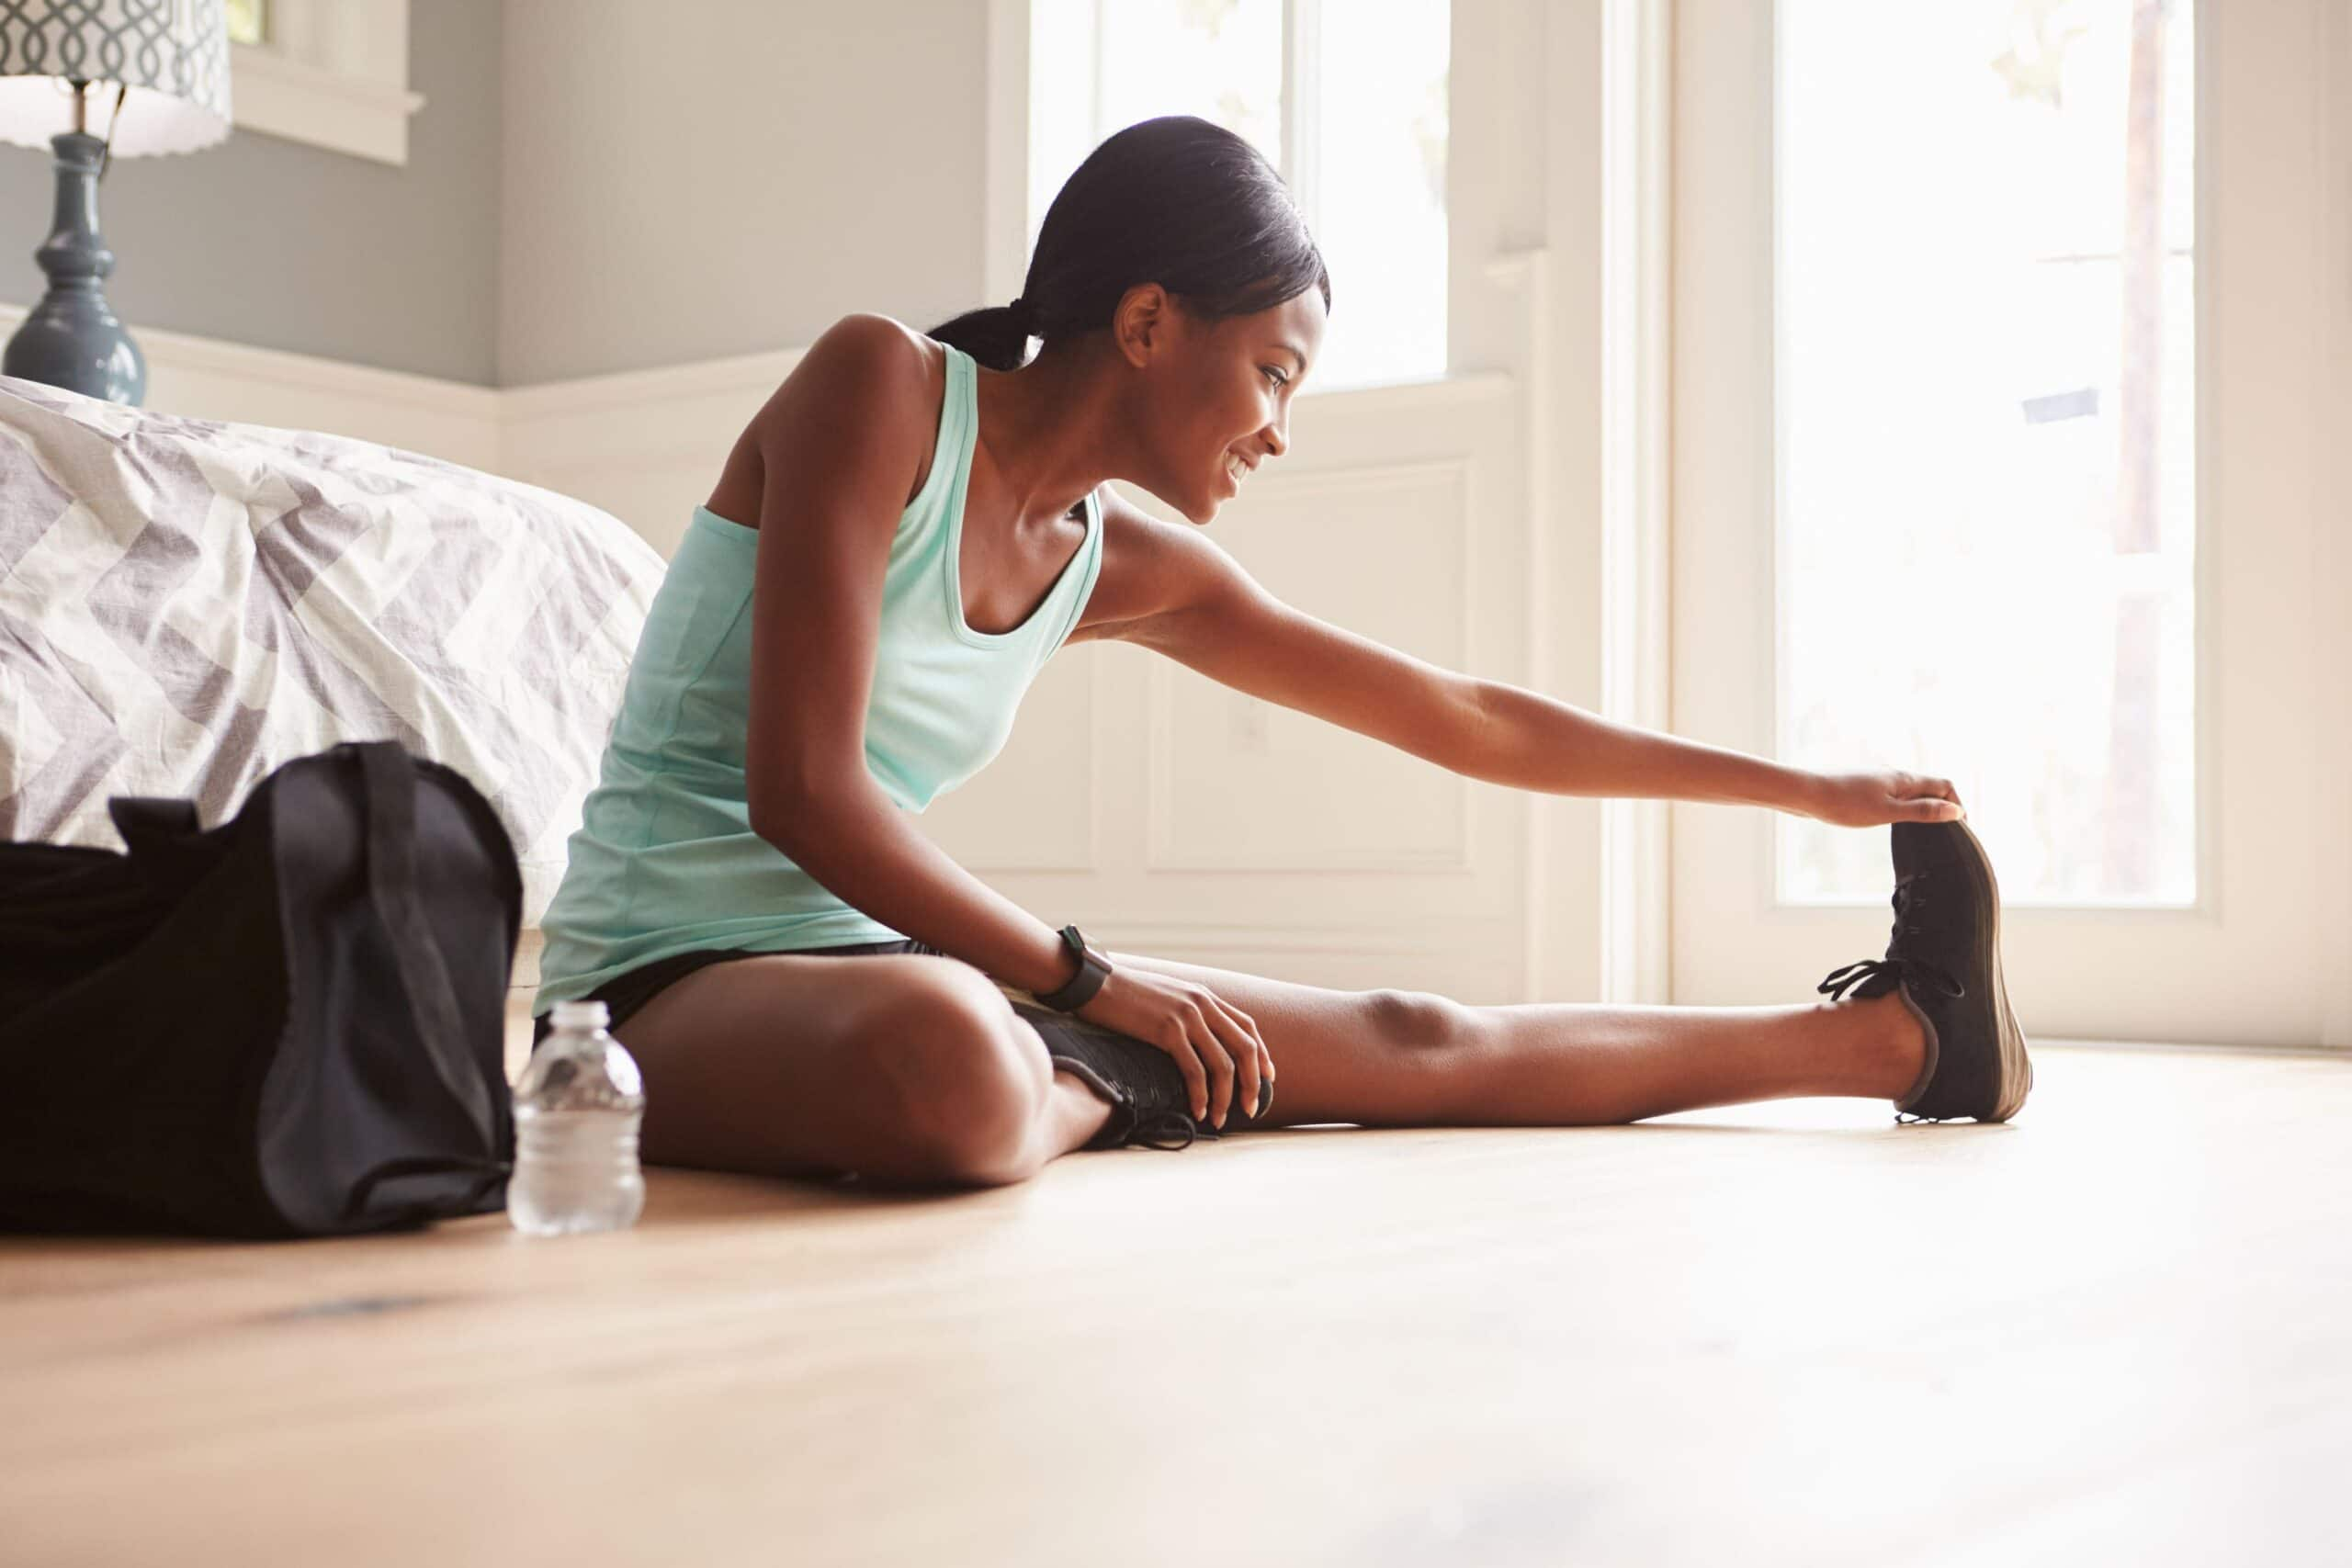 What is fitness recovery and how do you do it